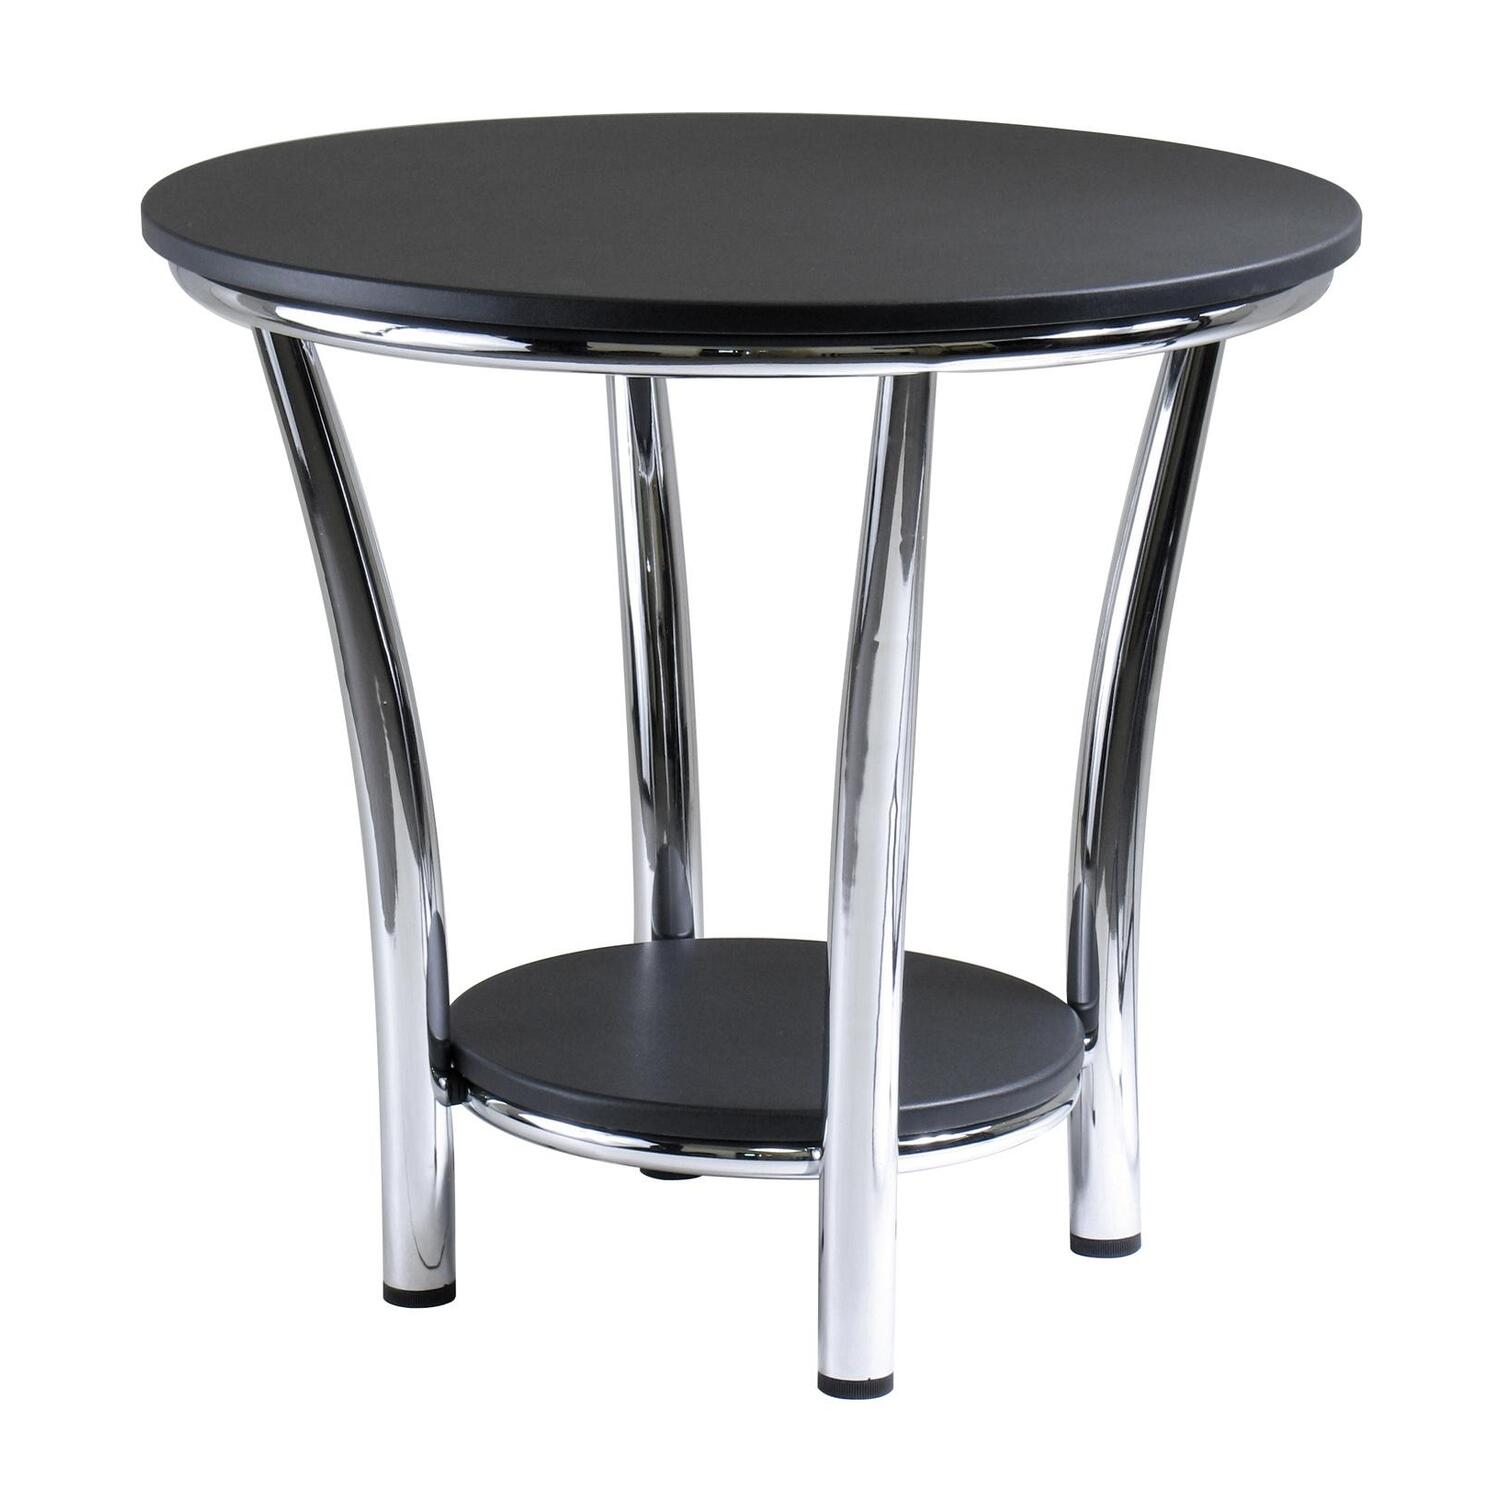 Maya round end table black top metal legs ojcommerce for Black wood end tables